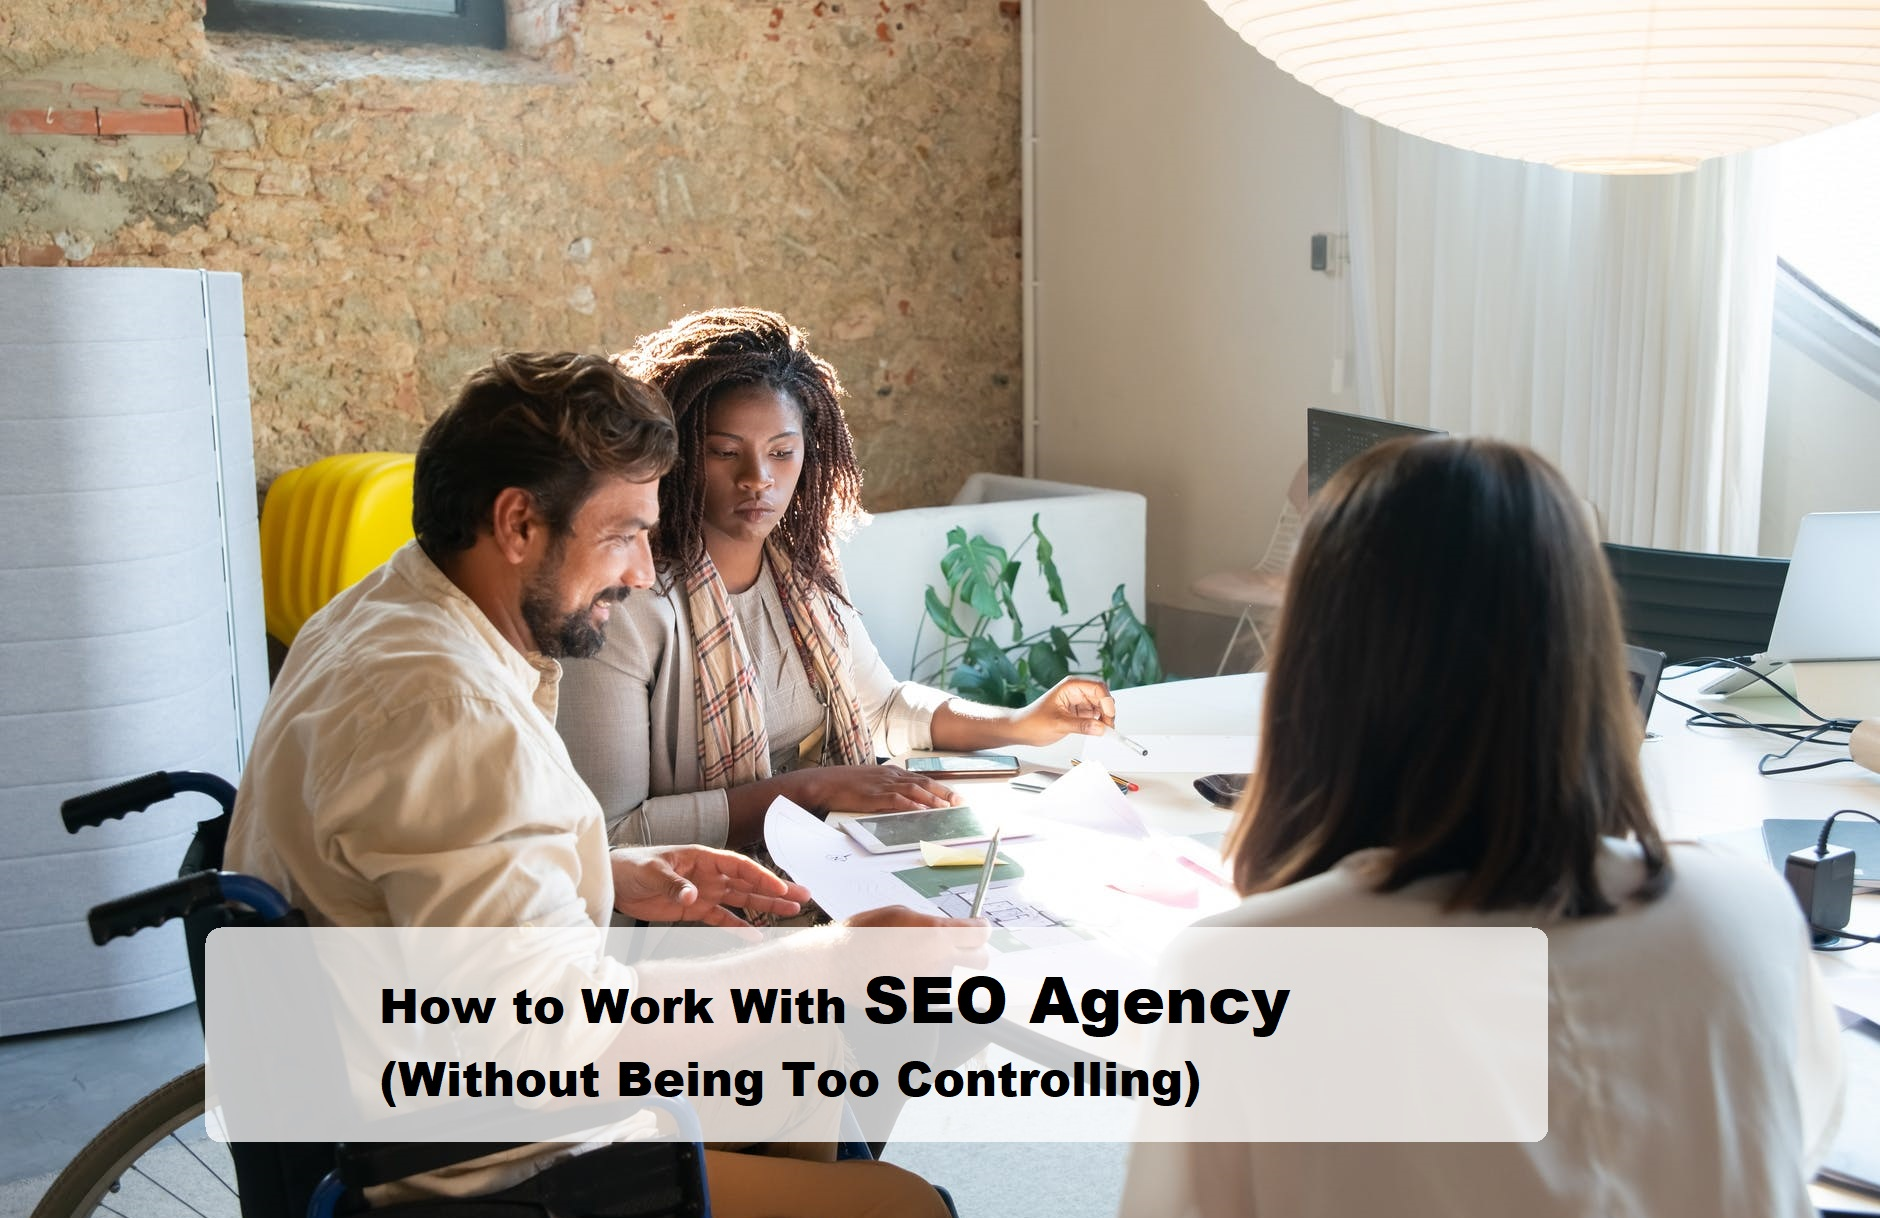 How to Work With SEO Agency (Without Being Too Controlling)